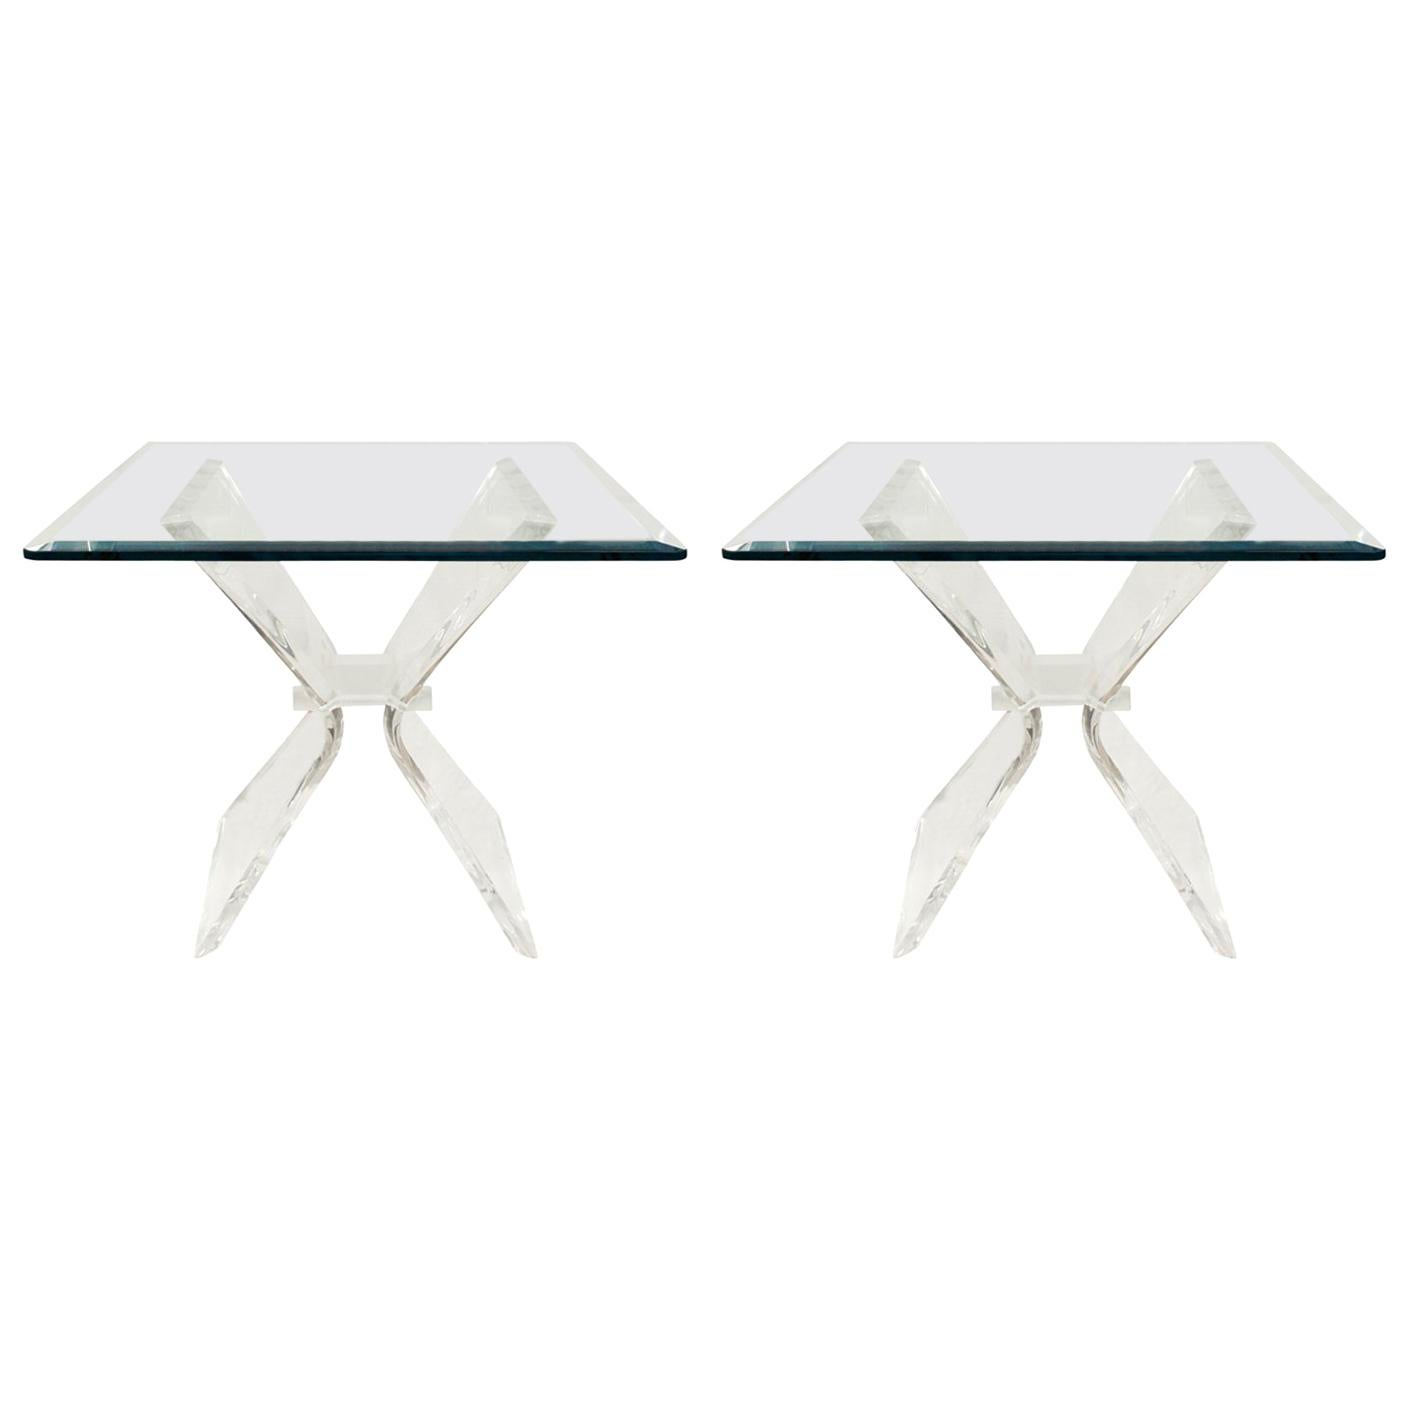 Pair of Lucite and Glass Sculptural End Tables, 1970s